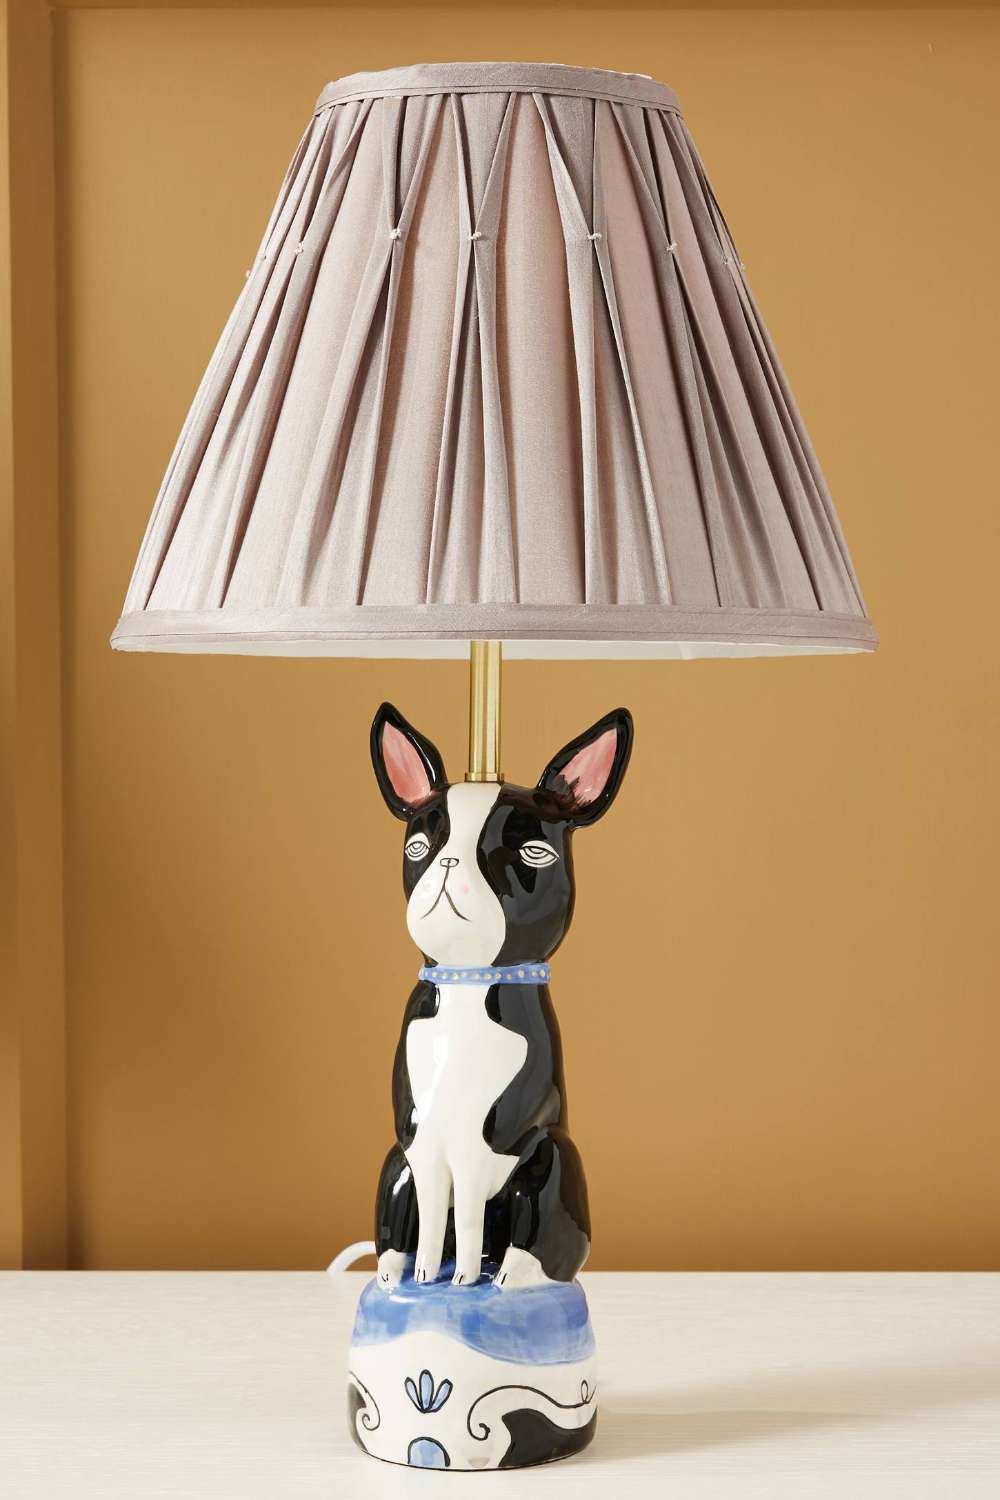 Art Knacky Pet Table Lamp by in Blue, Lighting at